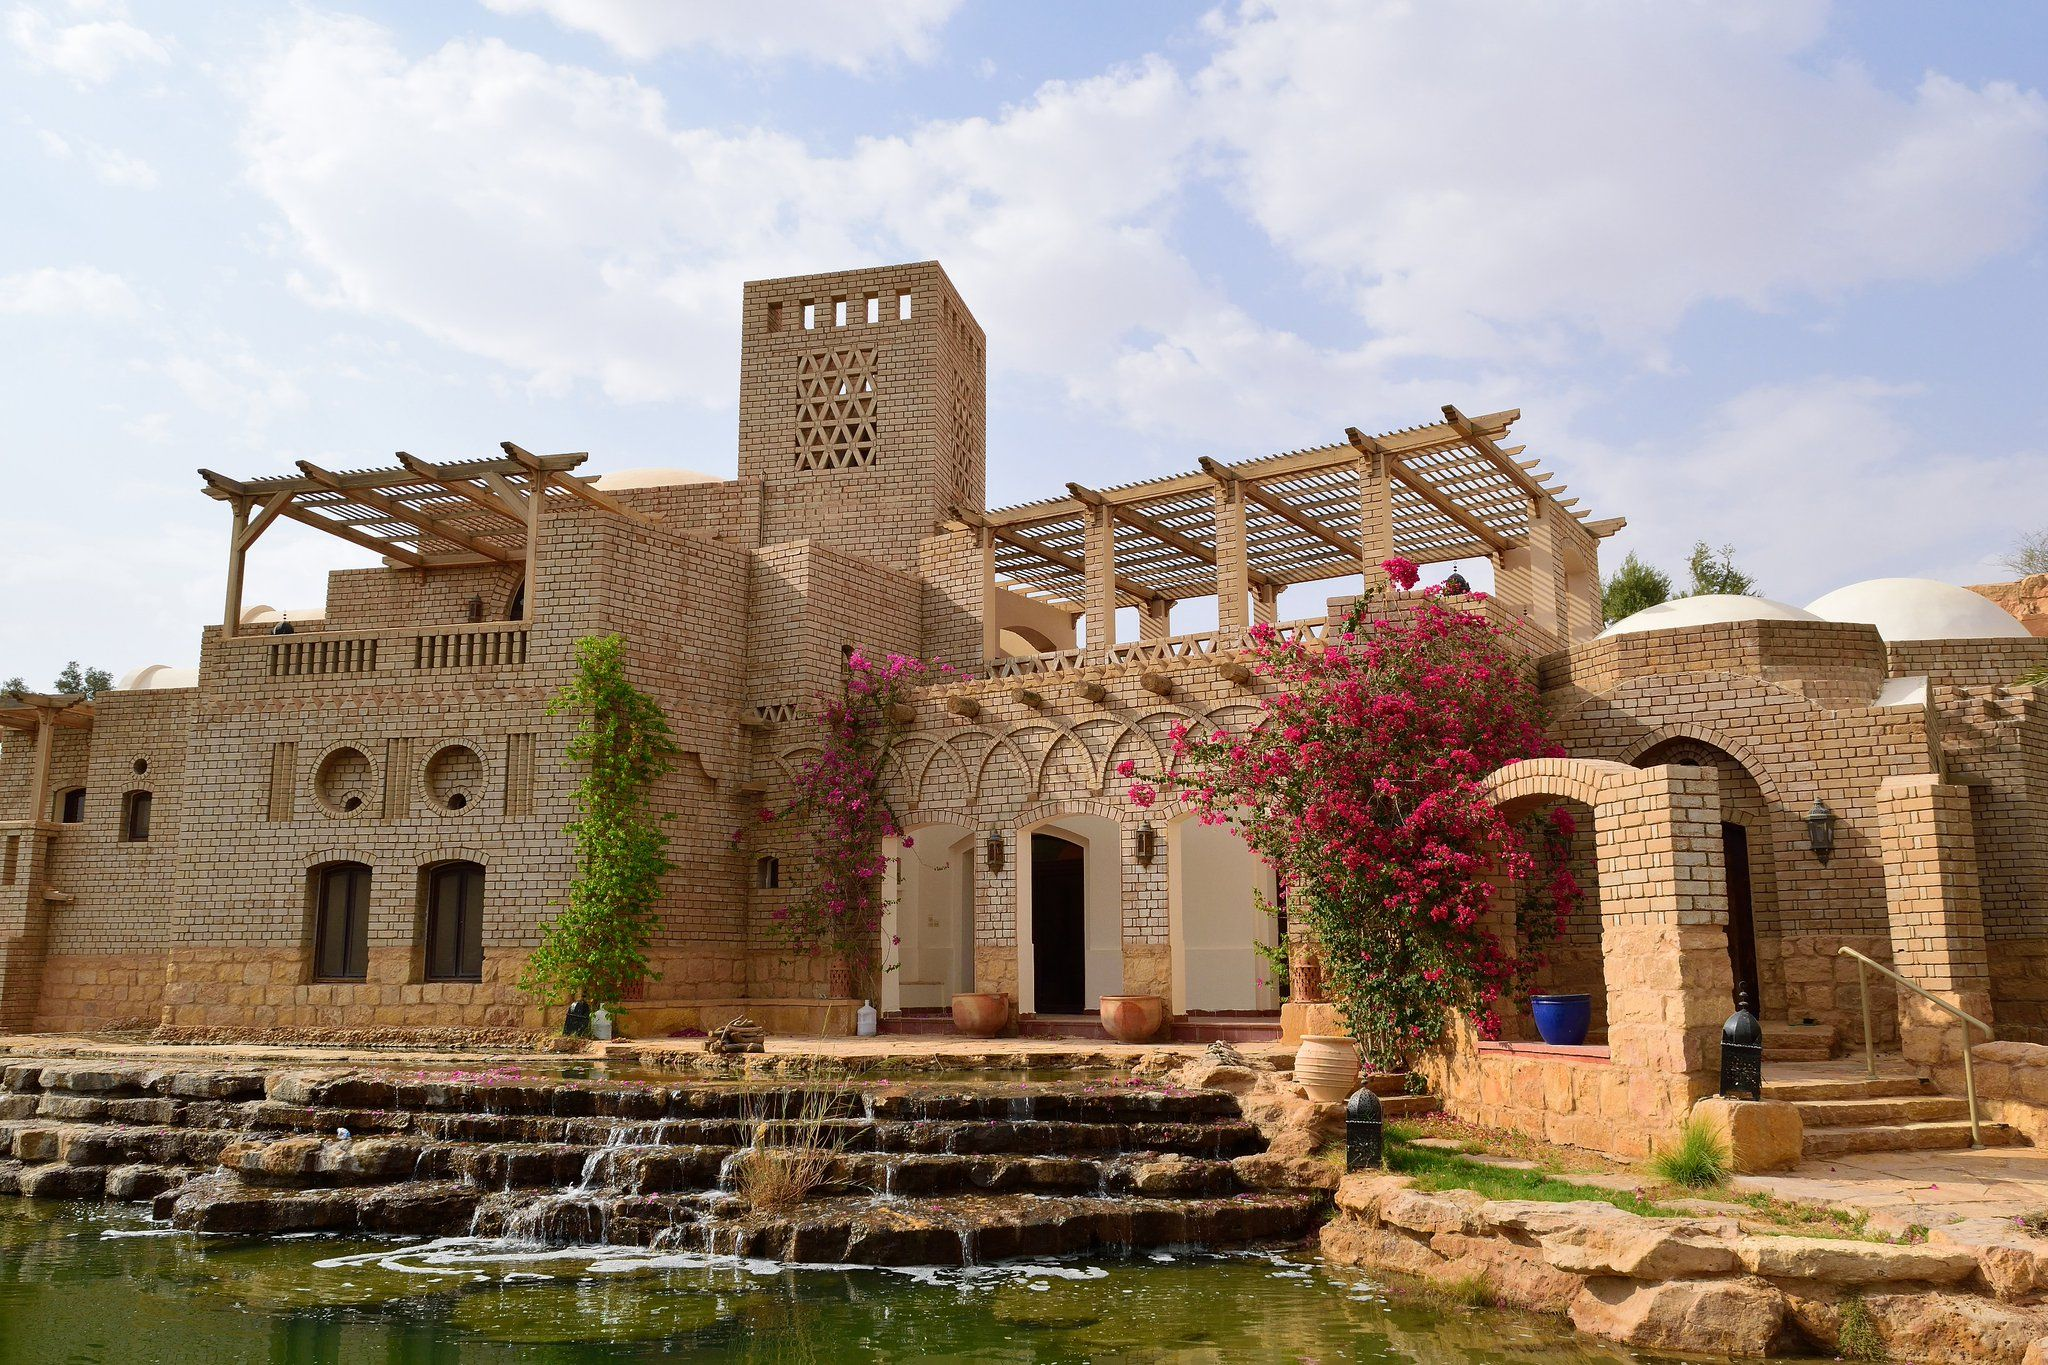 Adeem Consultant On Twitter Historical Architecture Islamic Architecture House Styles